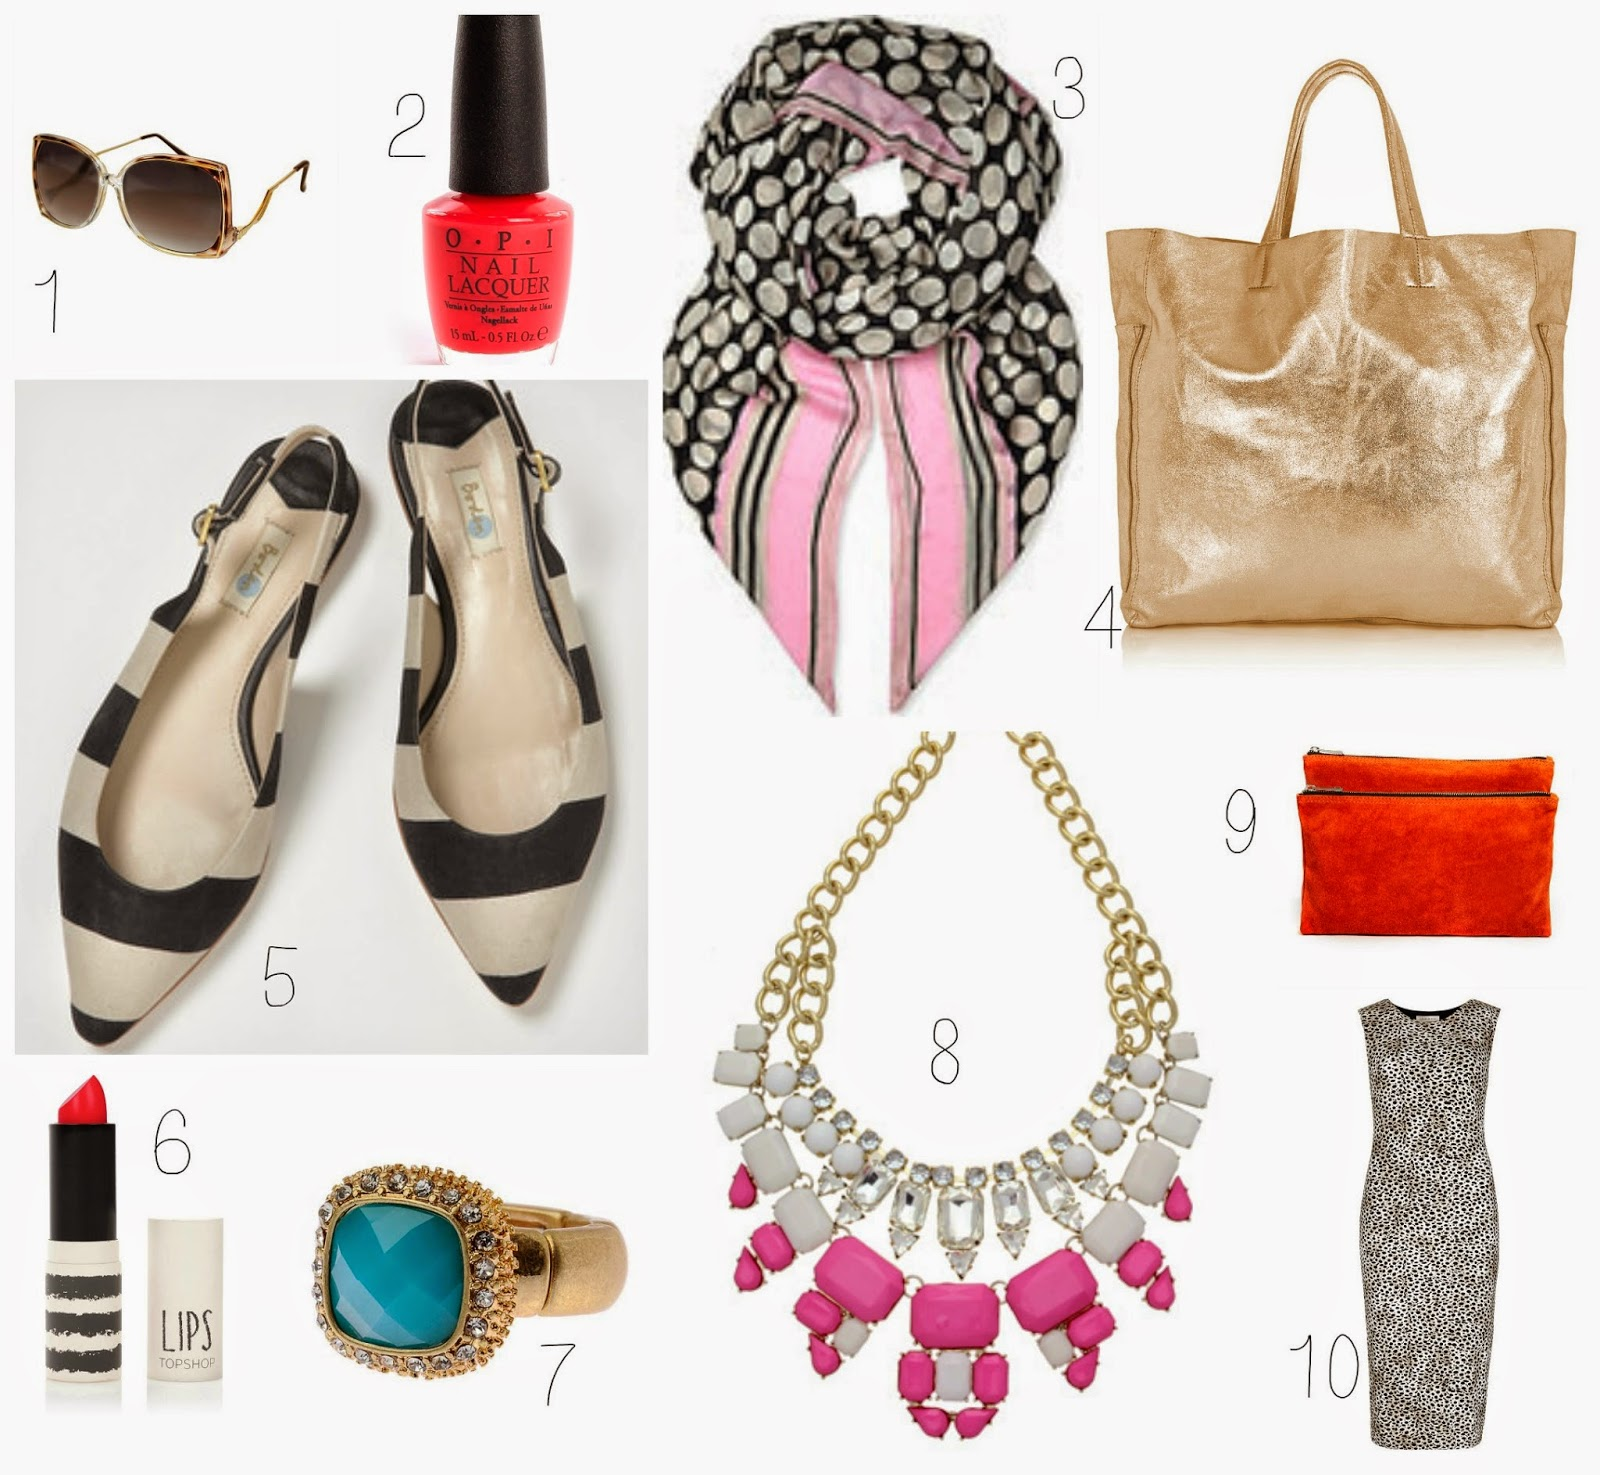 10 fashion and beauty extras you need..inspired by #vibmamas on Instagram | Laura Frantacci | WIt | wearing it today blog | red magazine | eremites woman magazine | joy for target | fashion | stylish mamas | vin mamas | mamas vin | mamasvib | instgarm | stylish mums on instgarm | pictures | style | shoes | fashionistas | mums | mama style | fashion buys | butwhymummywhy | mrs lilien | oh joy | sarah joan ross | shop bop | elle strauss | courtney adamo | babyccino kids | erica davies | modern mum must have | mostly yummy mummy | coca mama style |